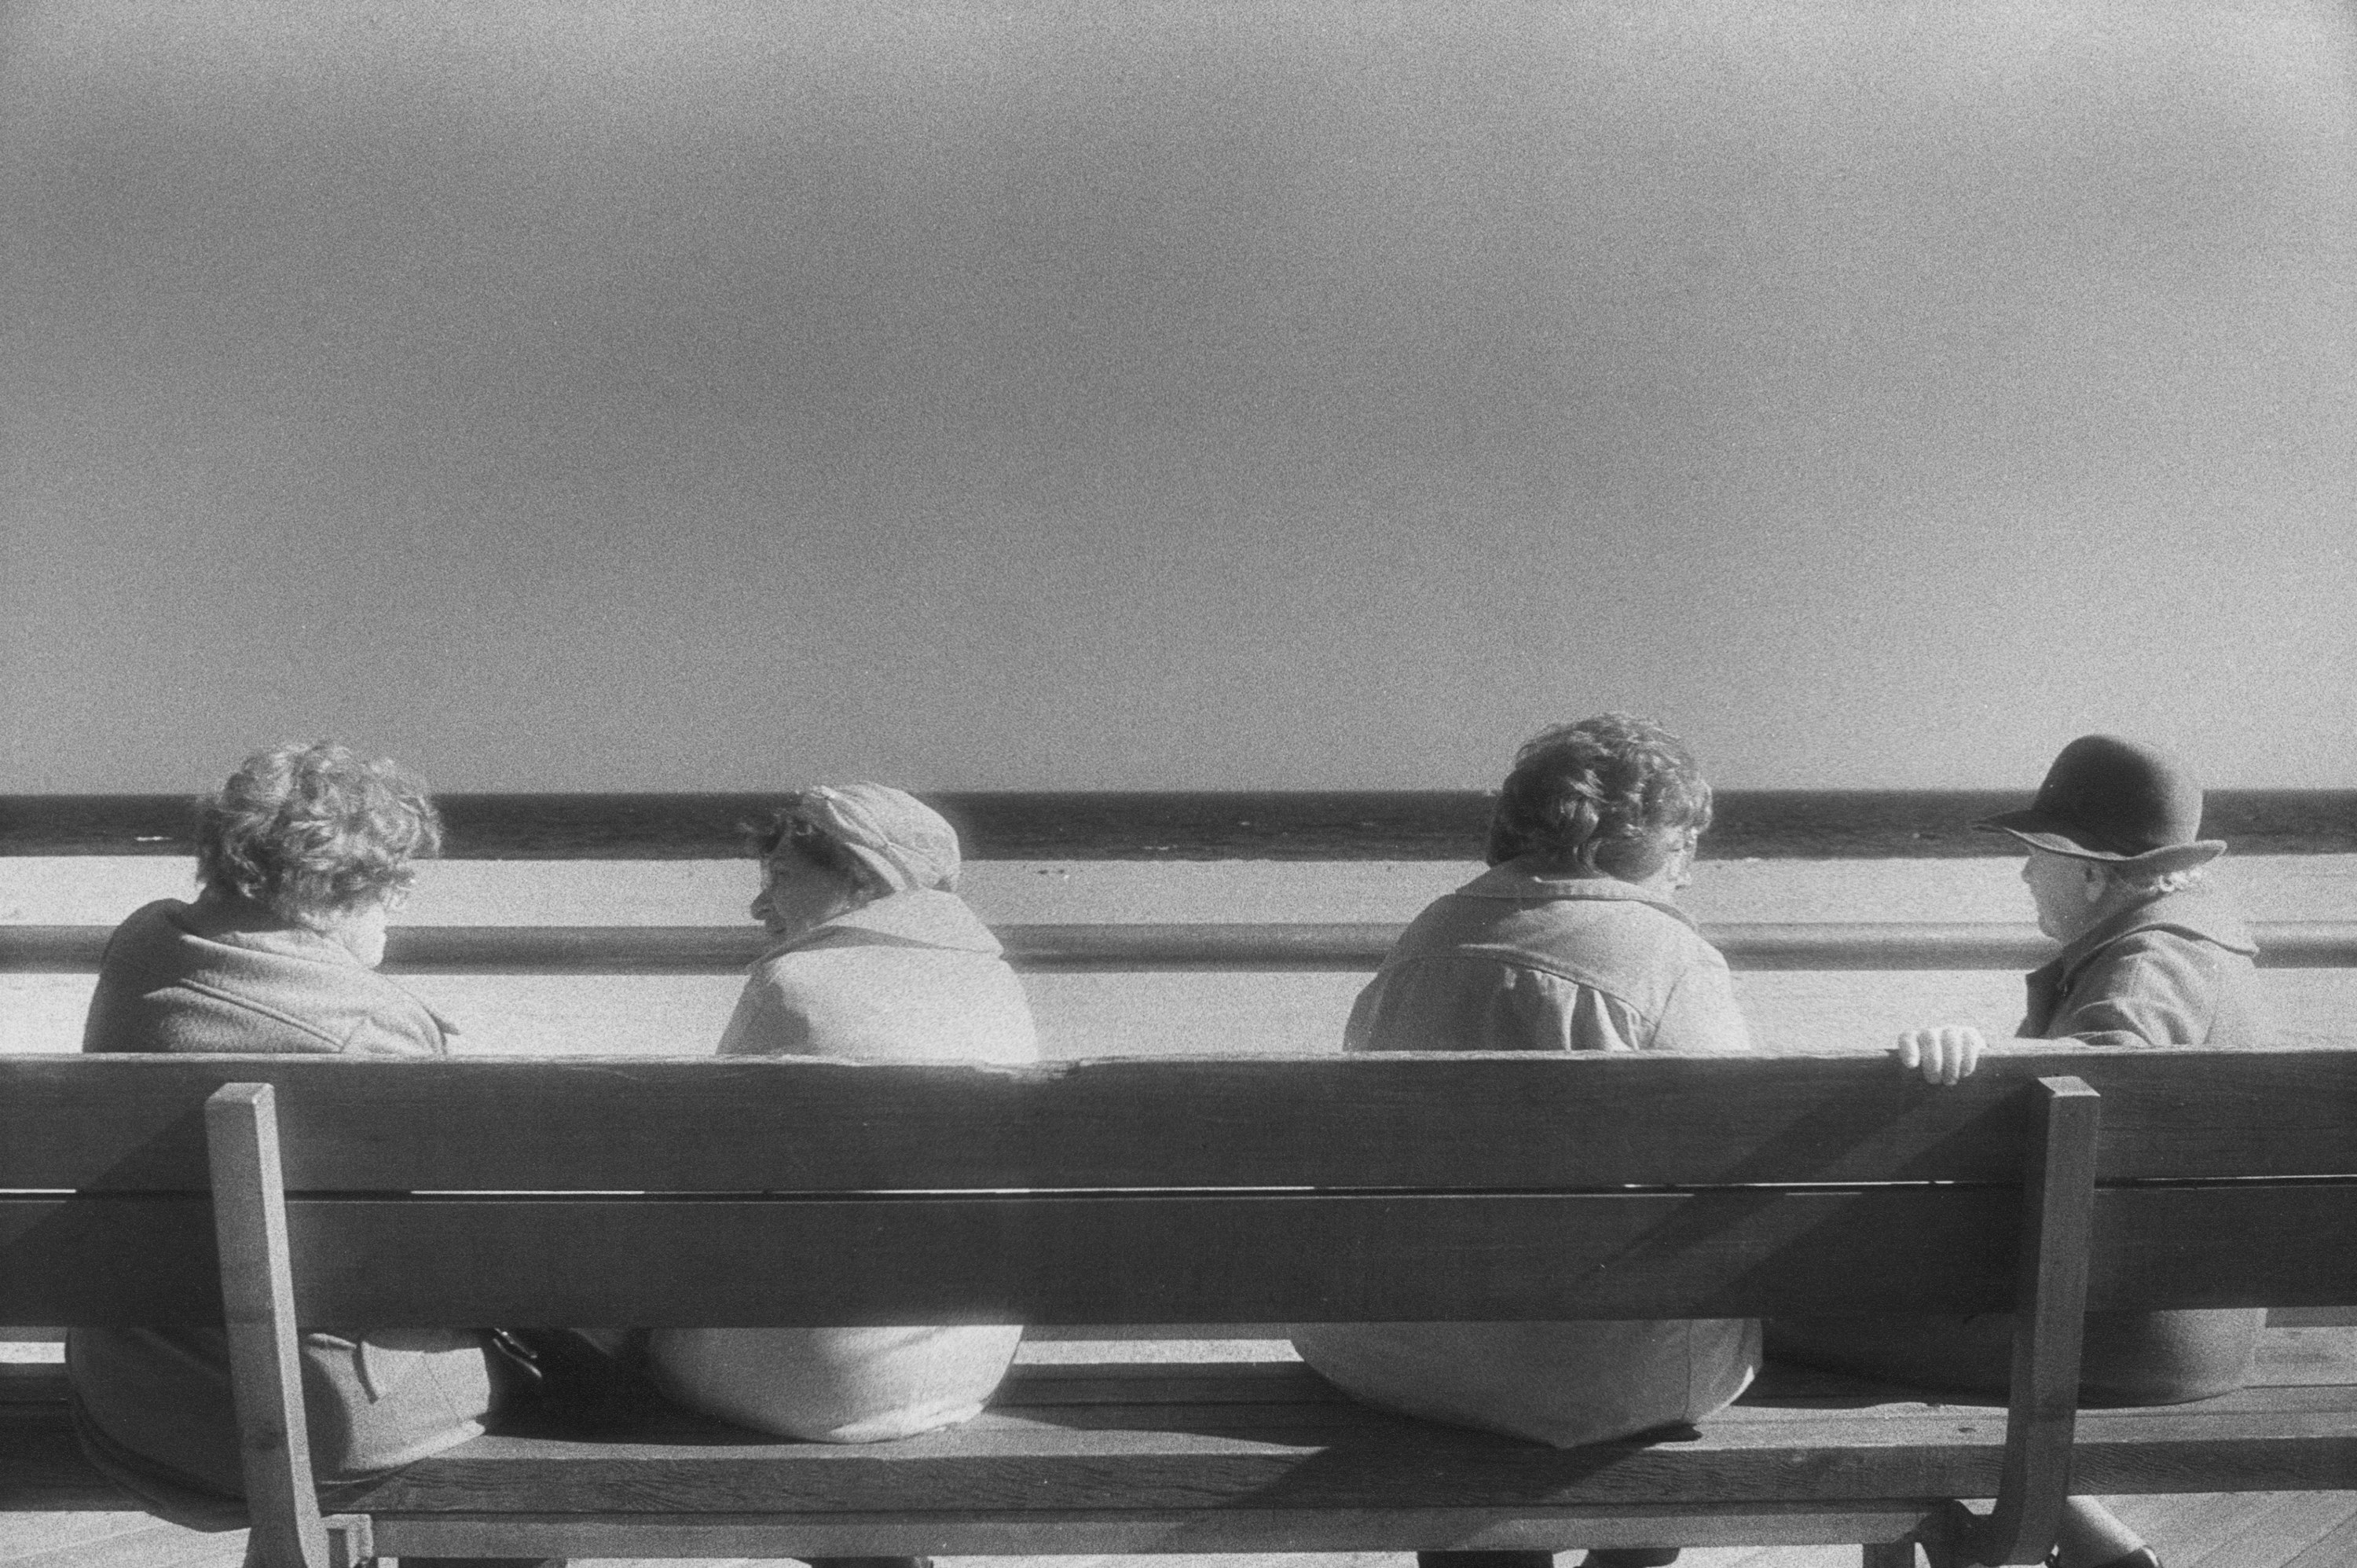 Four older women talking to each other on a bench in front of a beach